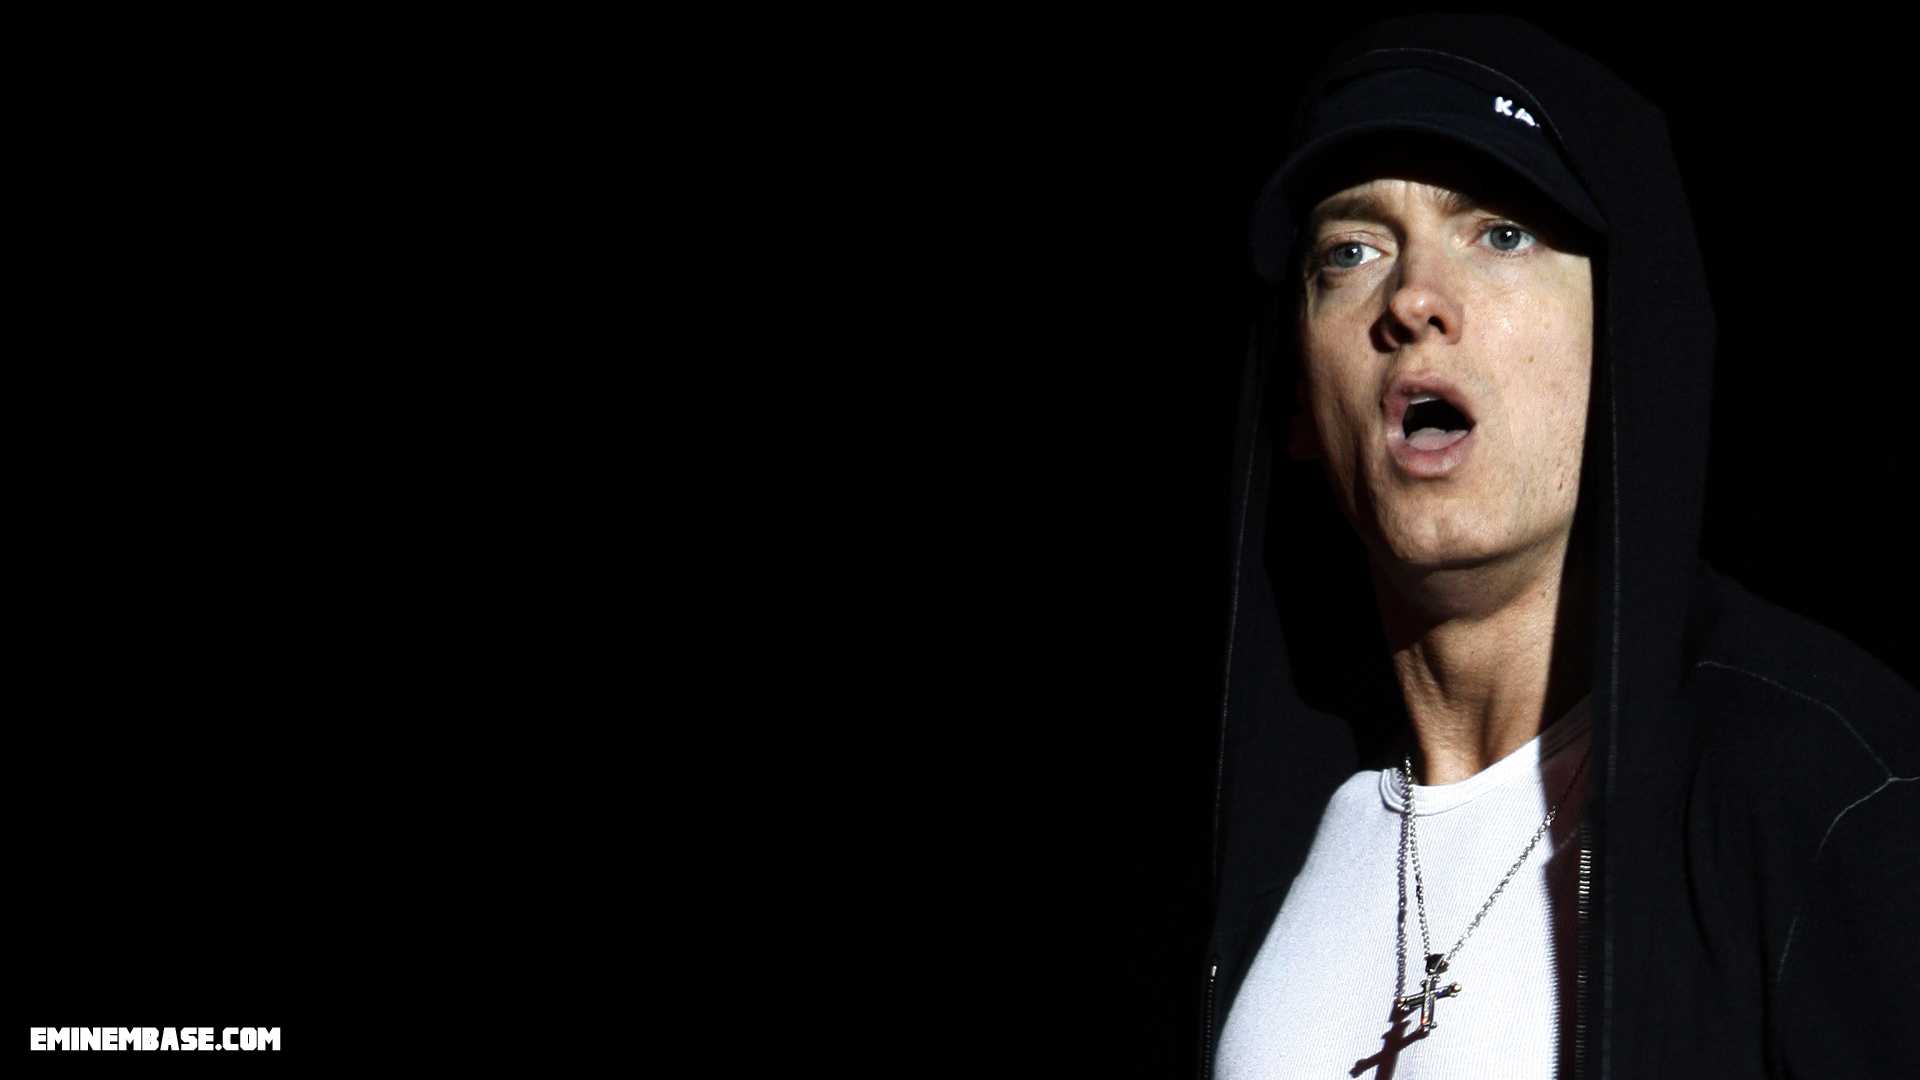 Free Download Description Eminem Wallpaper Is A Hi Res